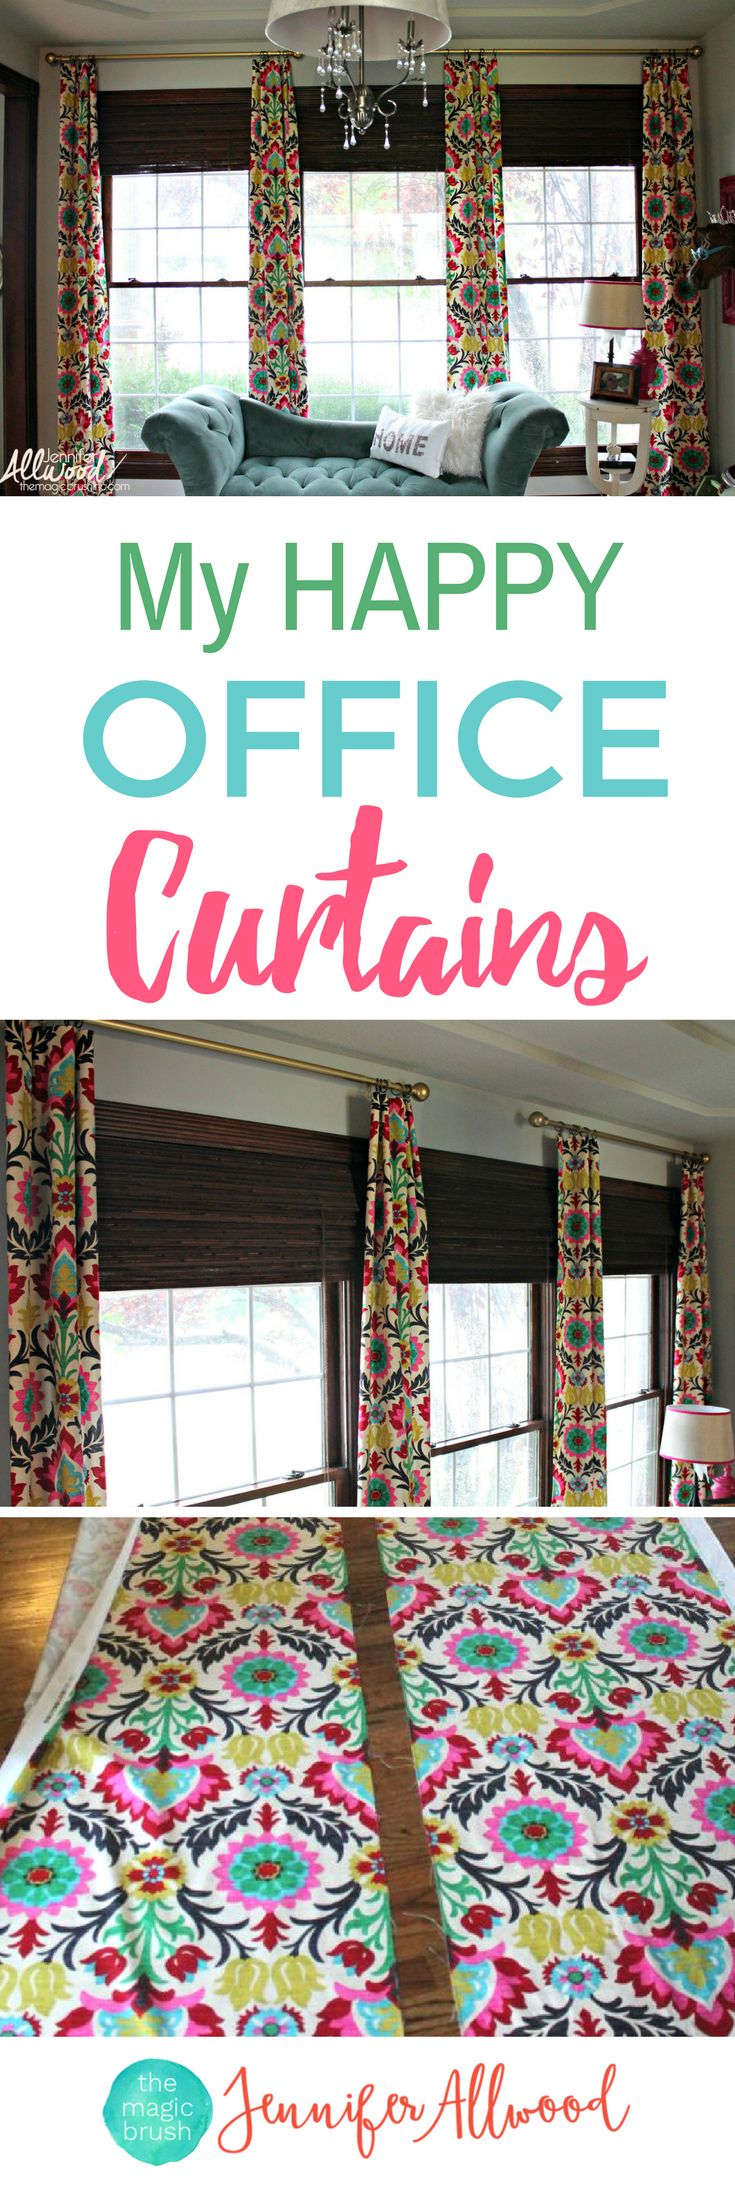 DIY No Sew Curtains | Happy Office Curtains with Waverly Santa Maria Desert Flower | How to make your own curtains | bright funky bold curtains | Decorating Advice by The Magic Brush